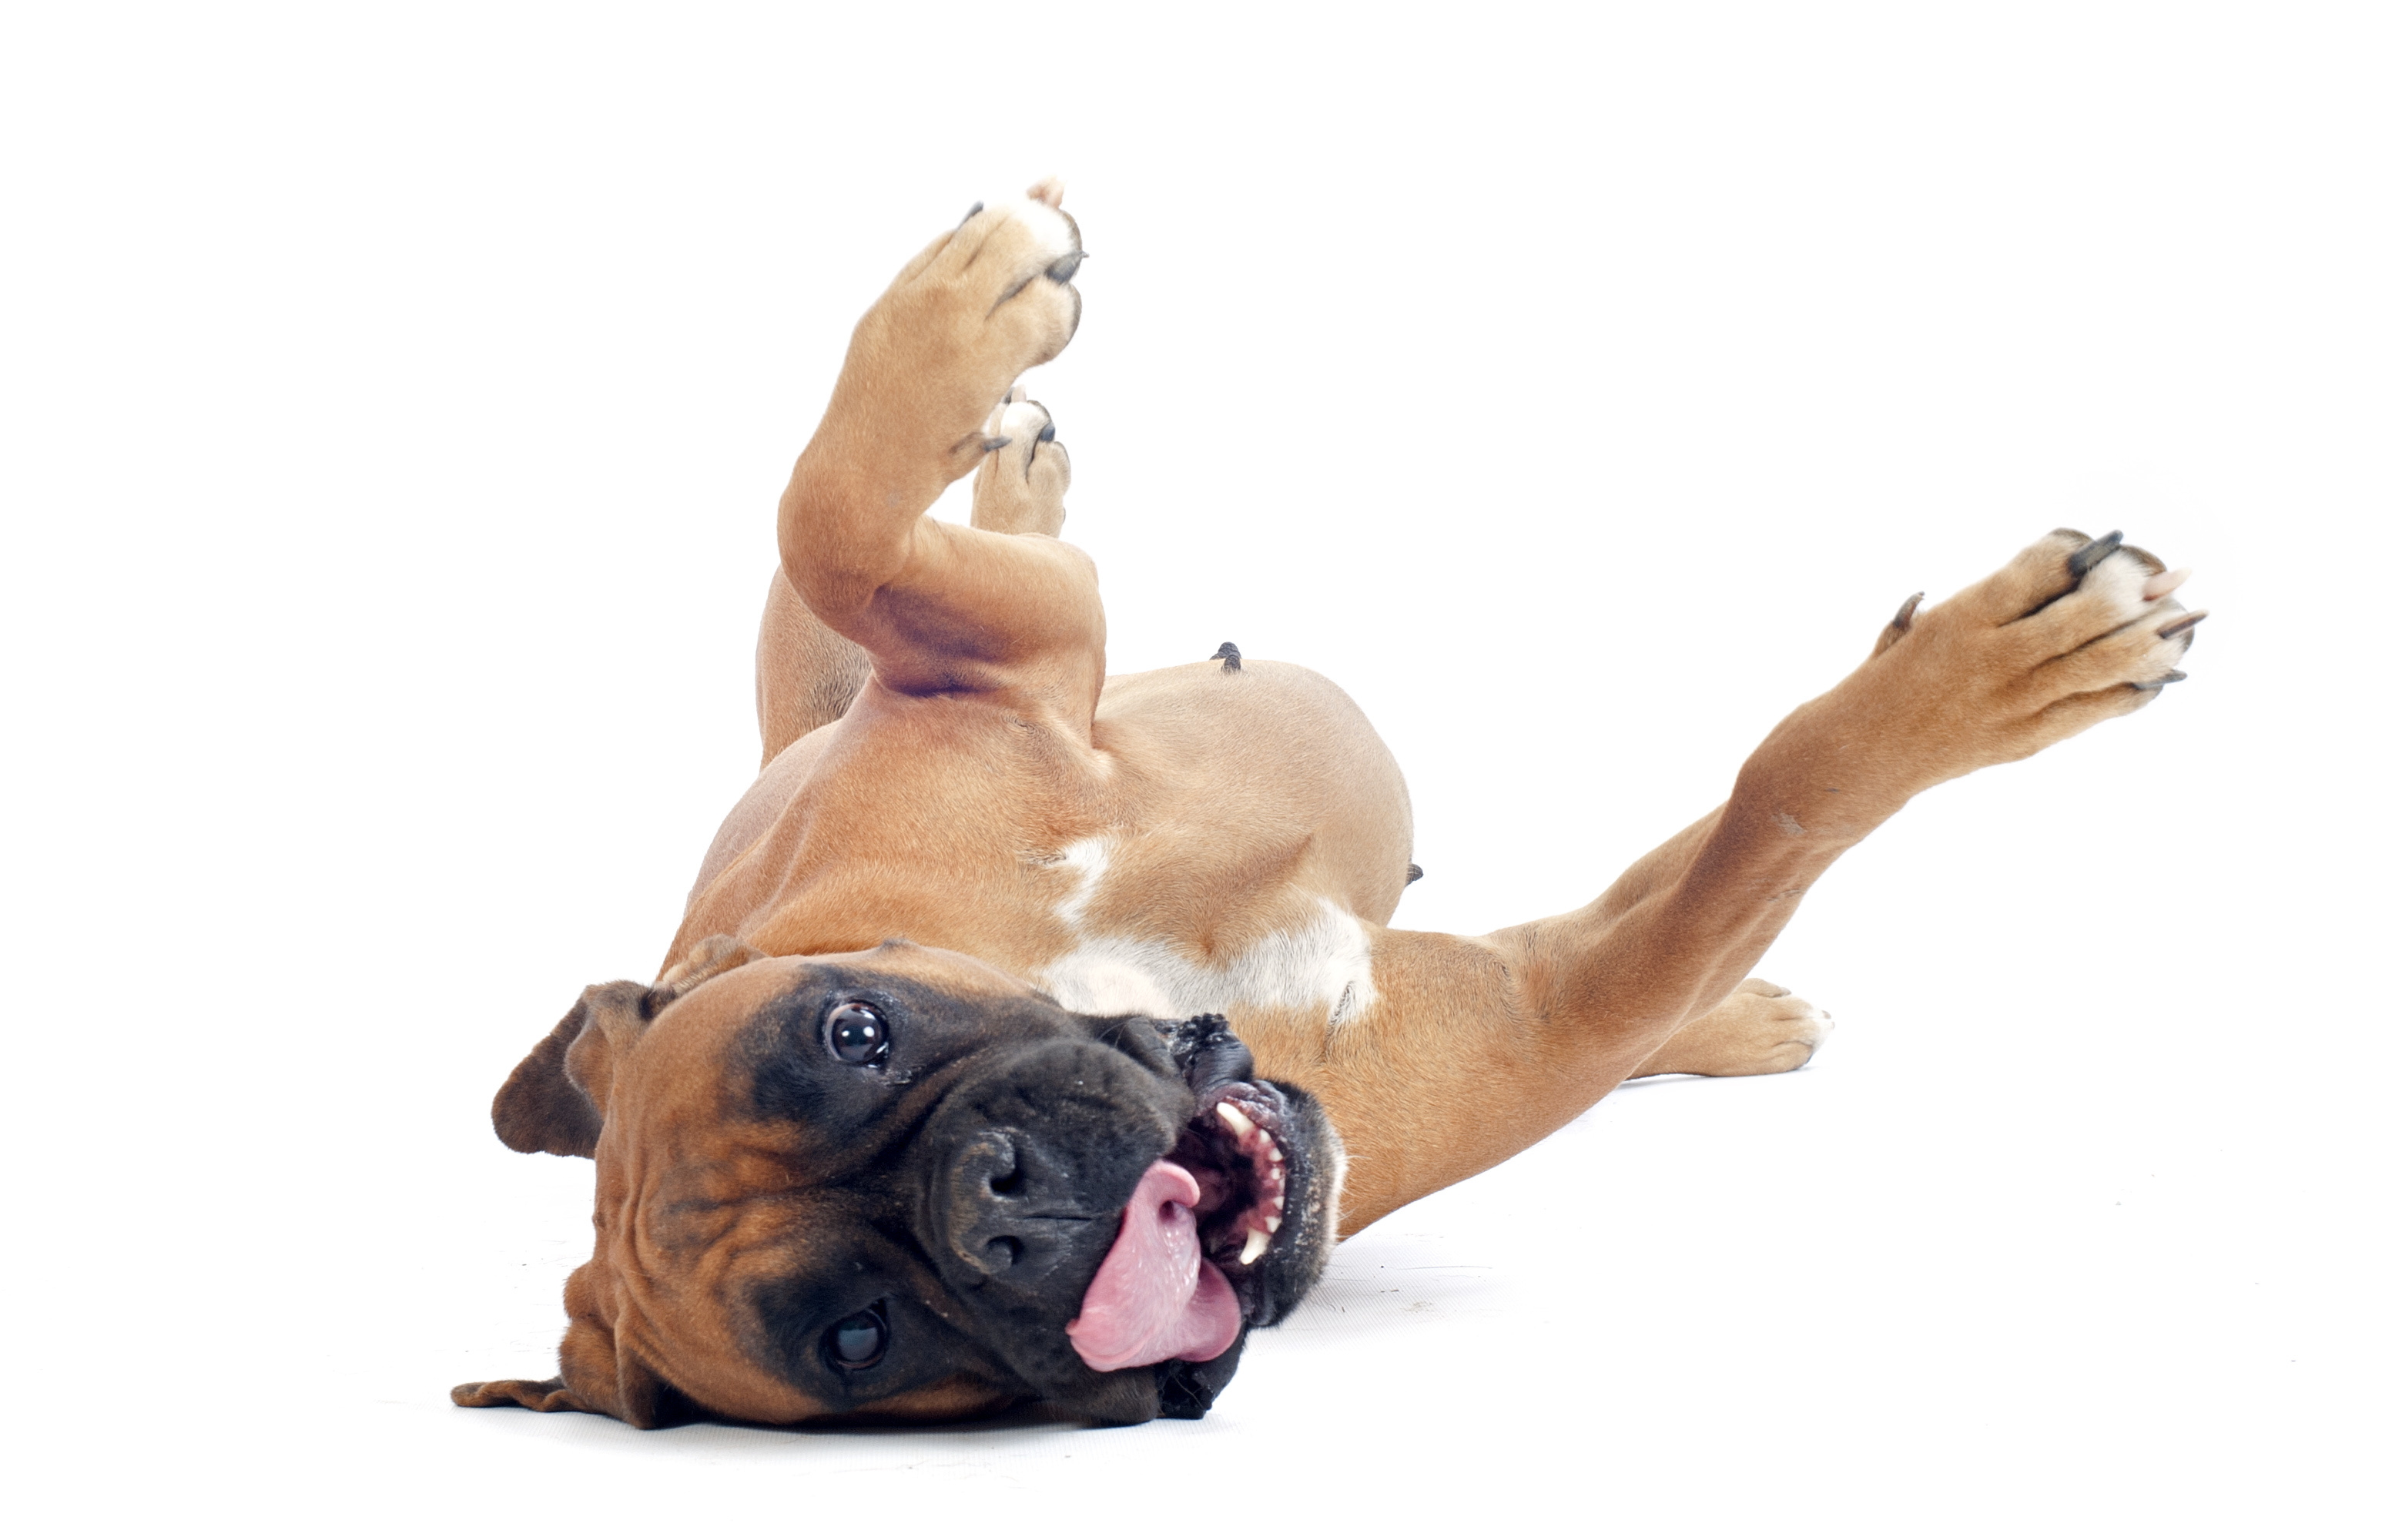 Boxer dog rolling over on back in front of a white background